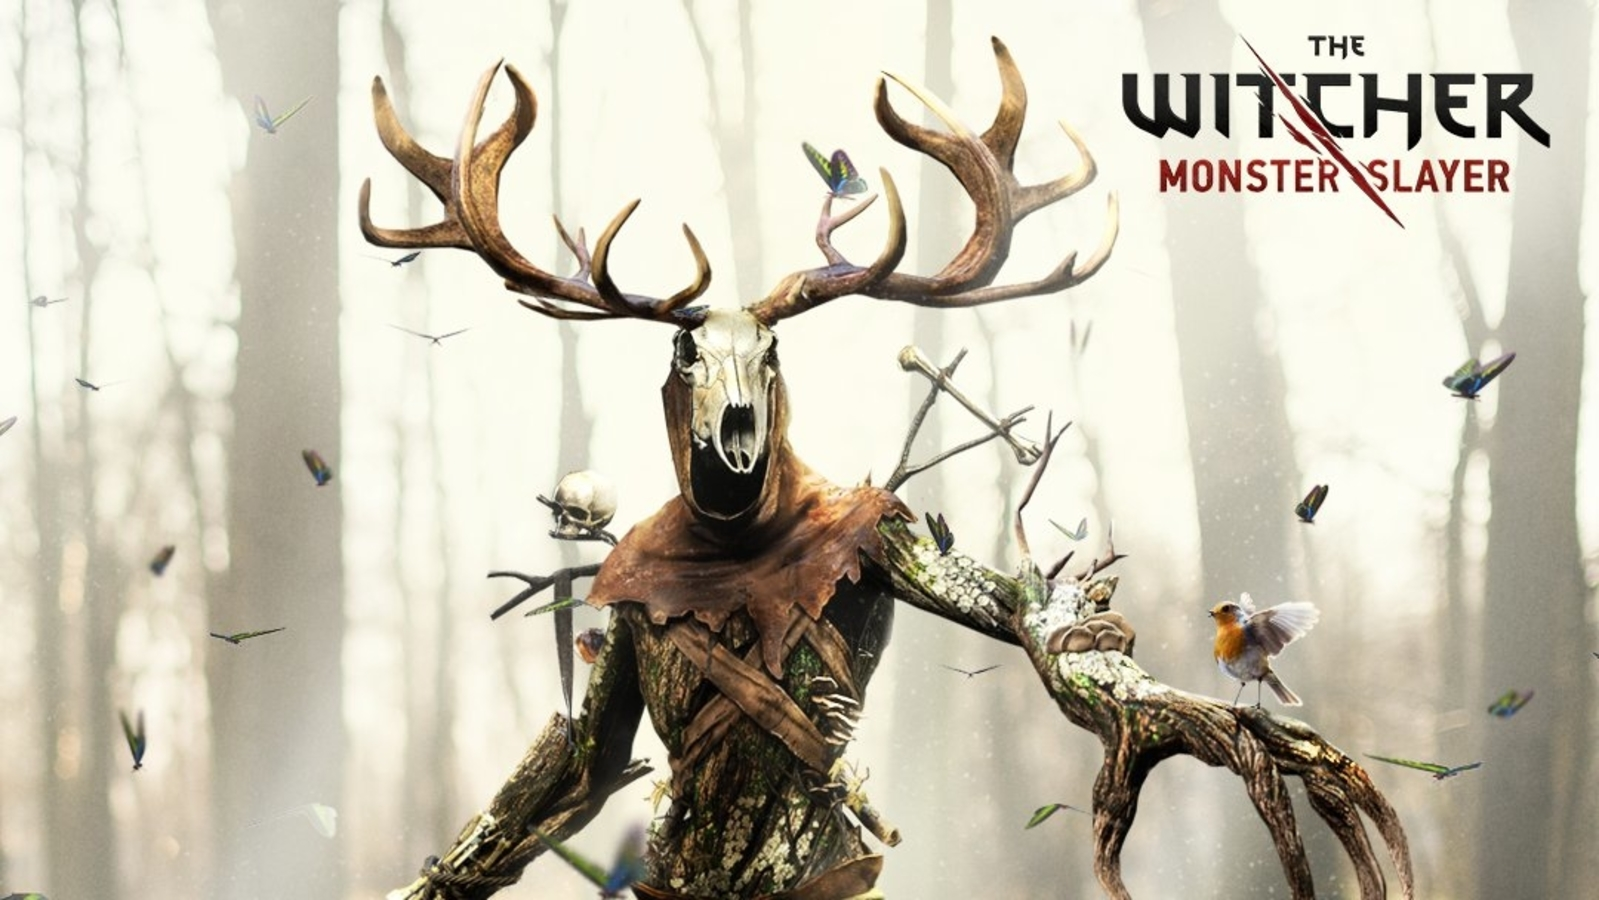 New The Witcher: Monster Slayer AR games allow players to become elite Monster Hunters